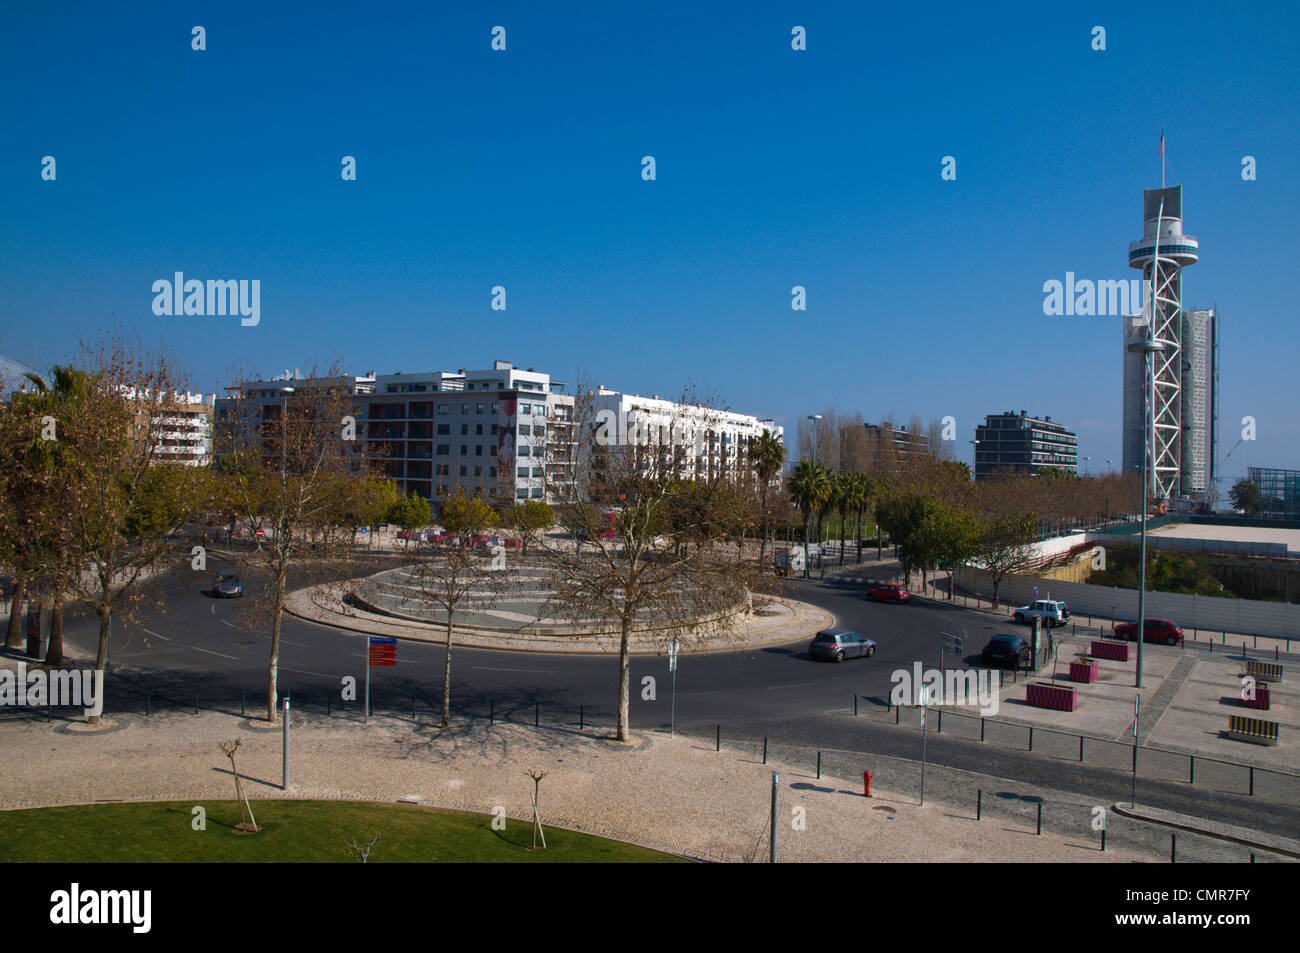 Rotunda dos Vice-Reis roundabout Parque das Nacoes the Park of Nations area Lisbon Portugal Europe - Stock Image